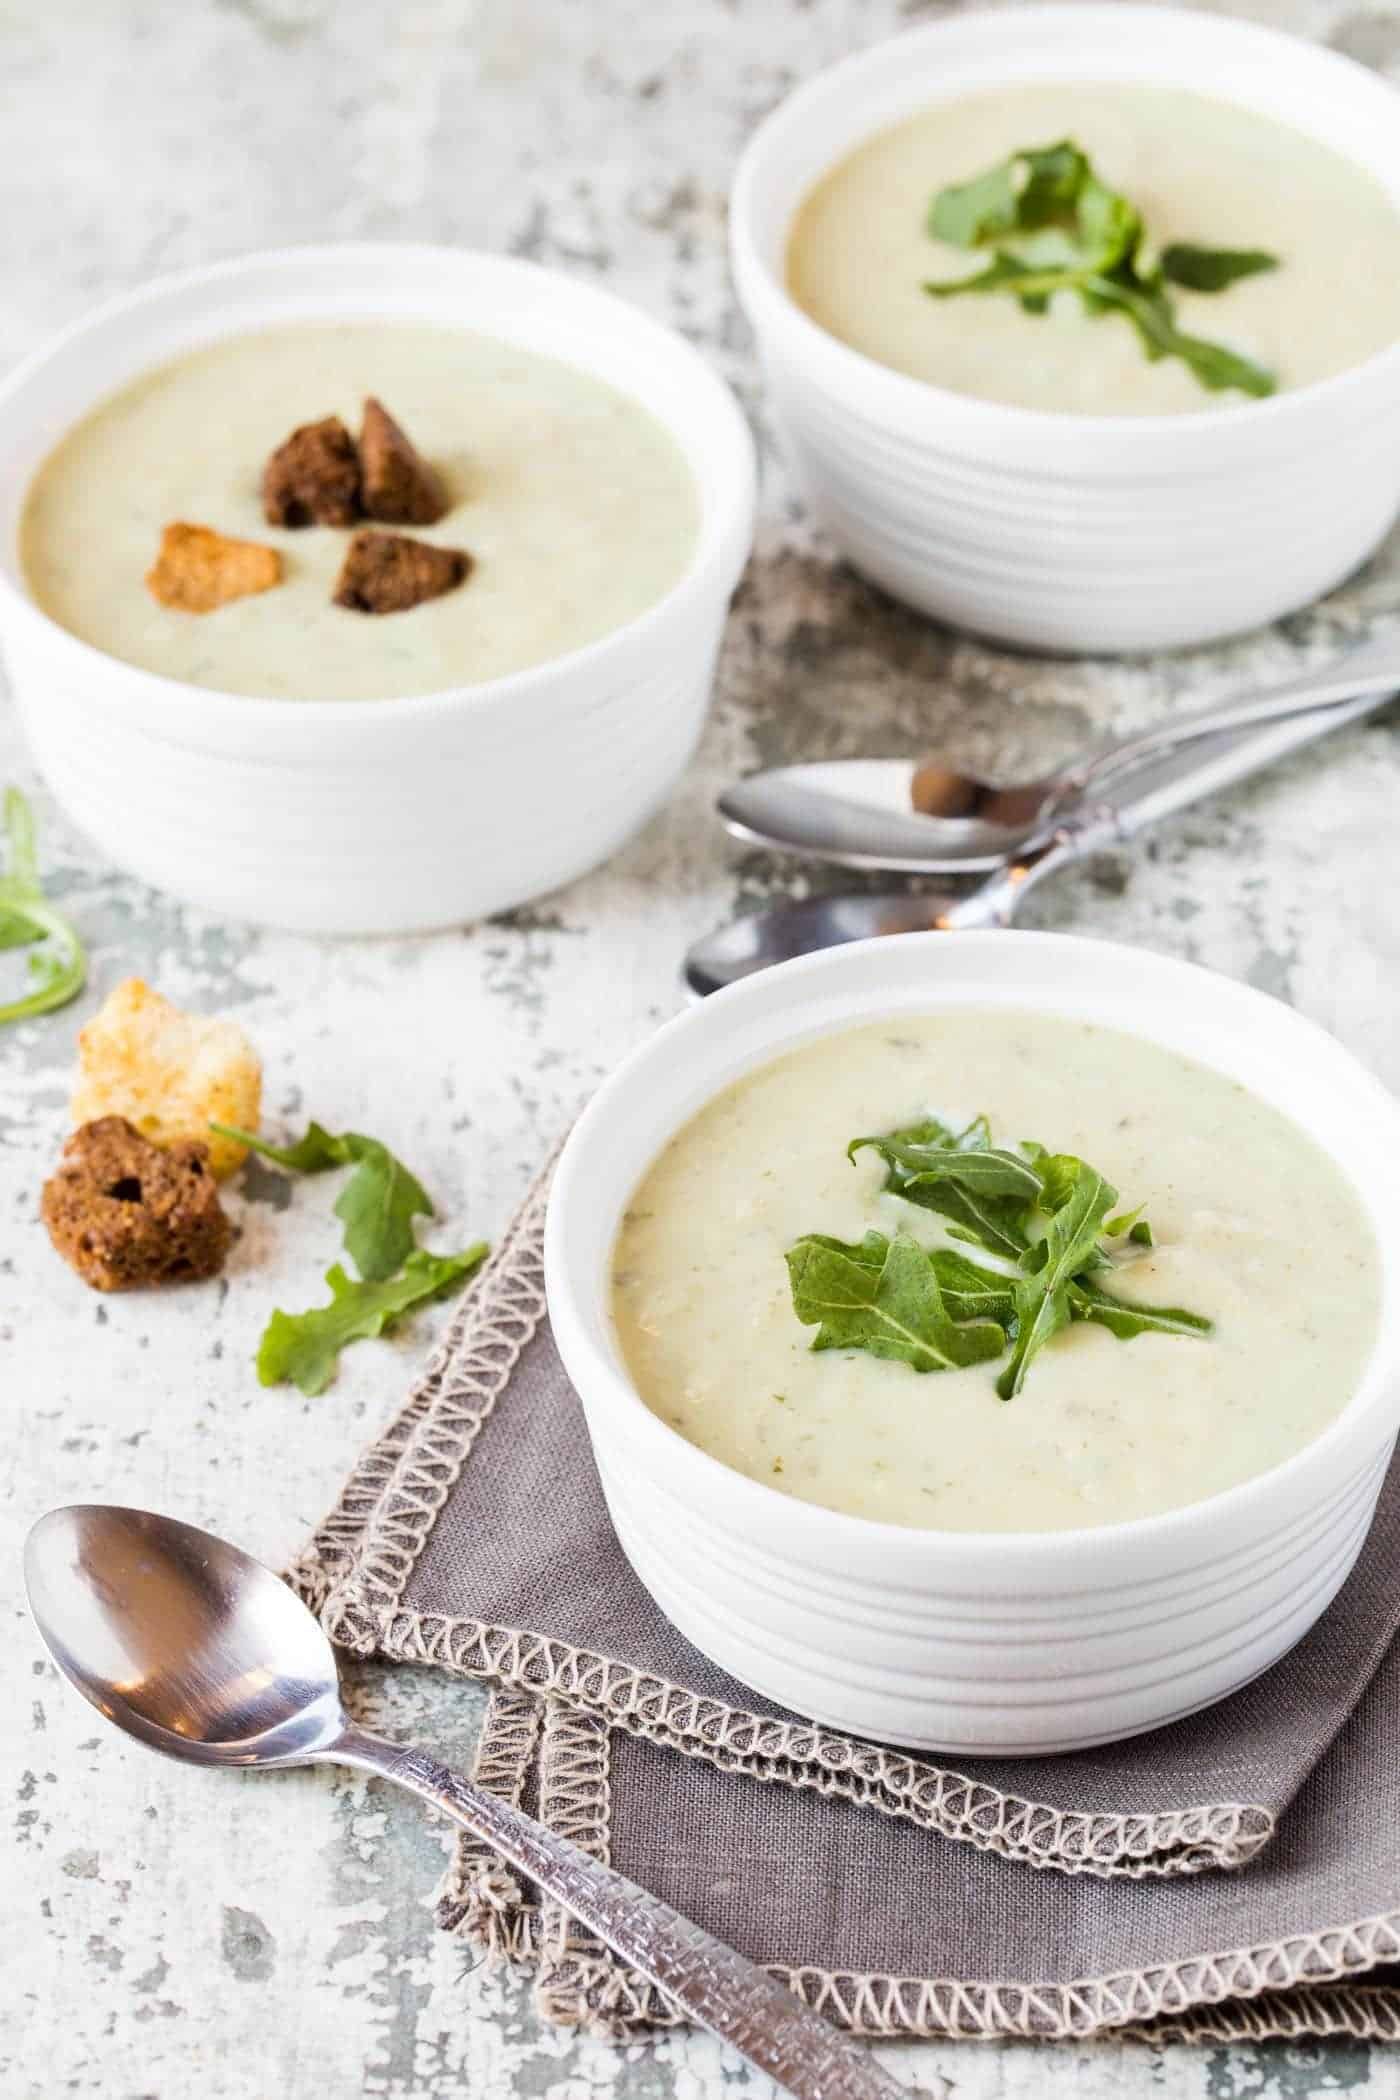 Three white ramekin bowls filled with Roasted Potato Leek Soup with Arugula. One bowl is on a dark gray napkin with a spoon and the other bowls are garnished with croutons and fresh arugula.